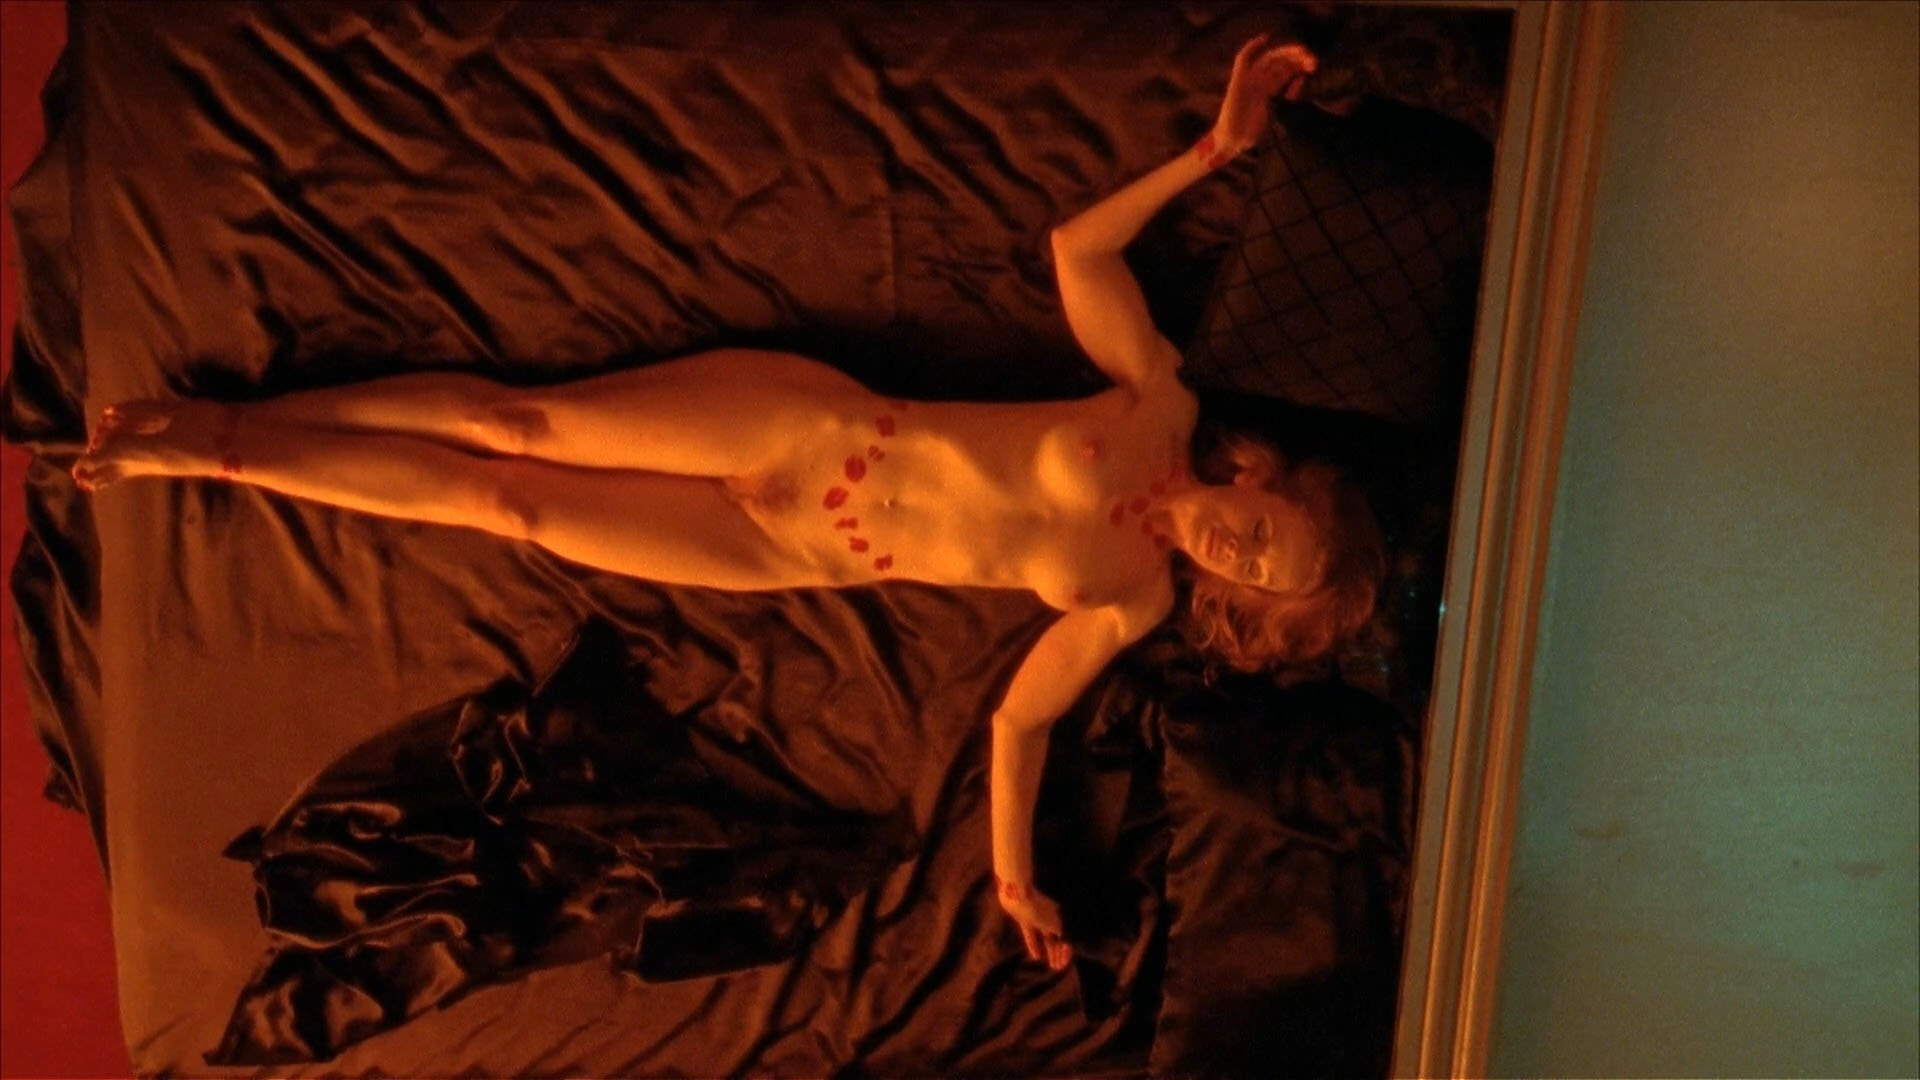 Alison Whyte nude - Satisfaction s02 (2009)